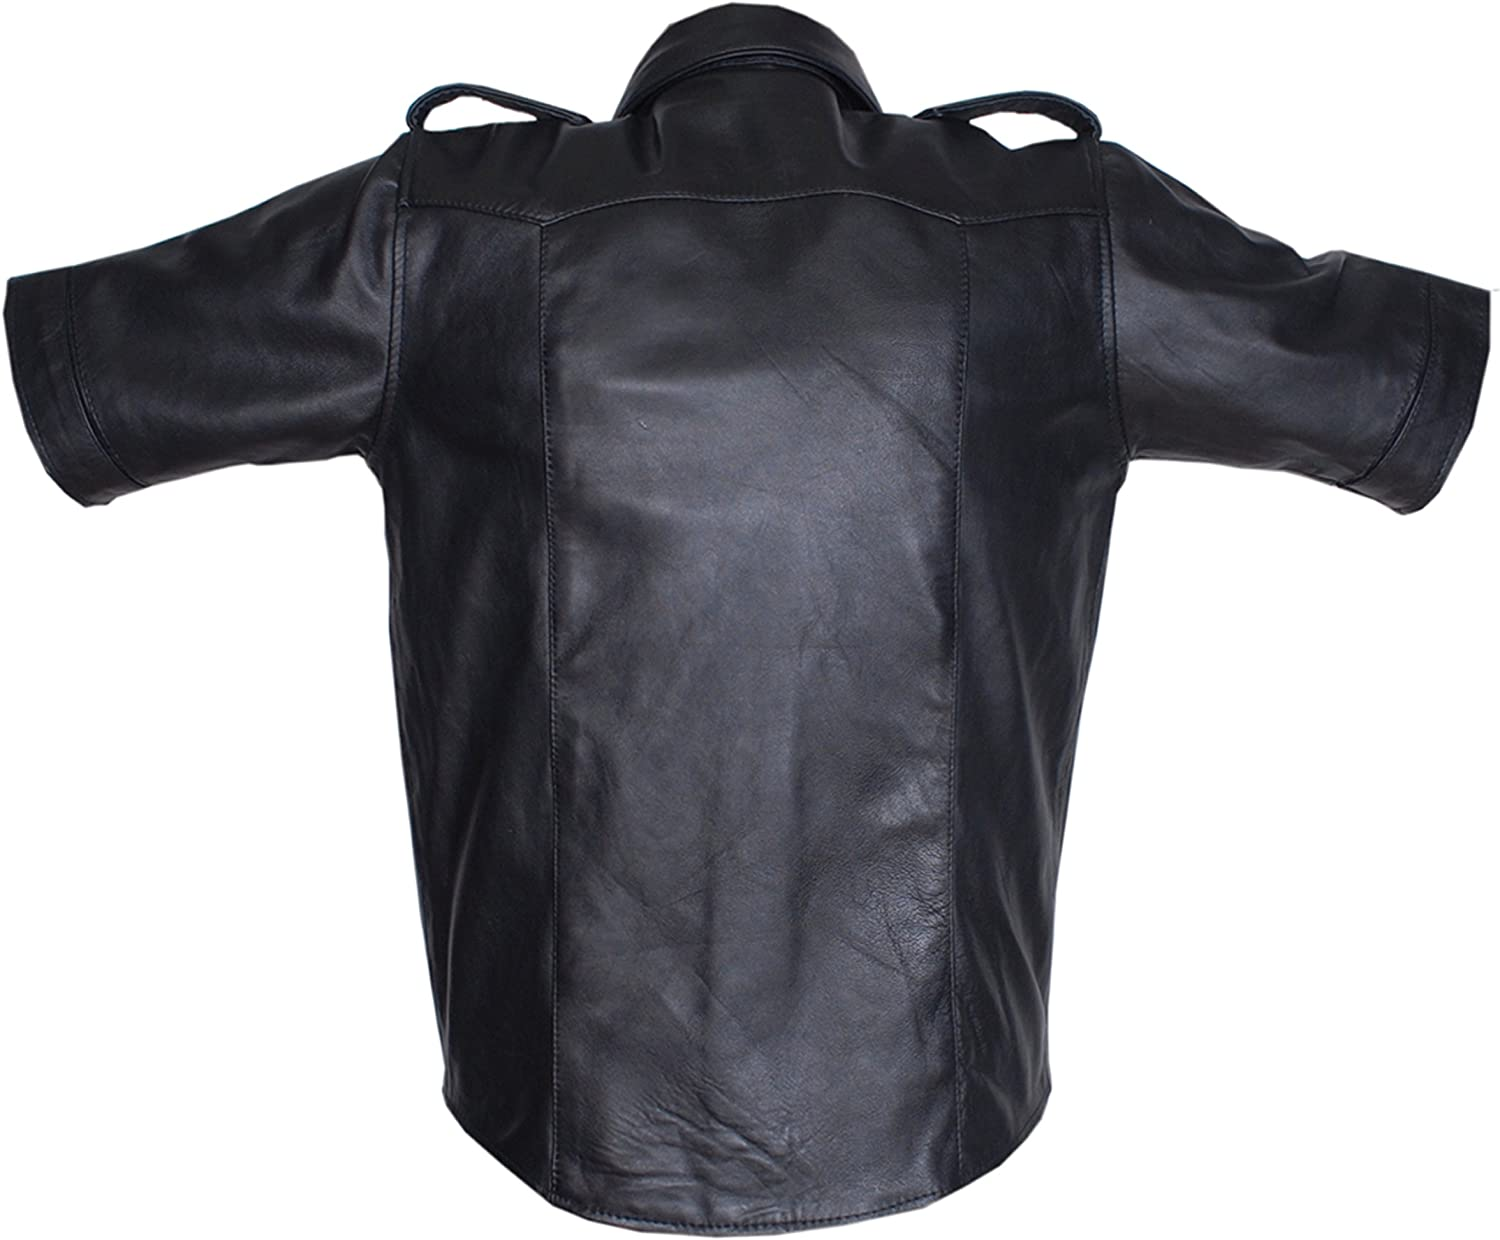 Mens Classic Model Fashion Cowhide Leather Jacket /& Color Black Size Small to 3XL